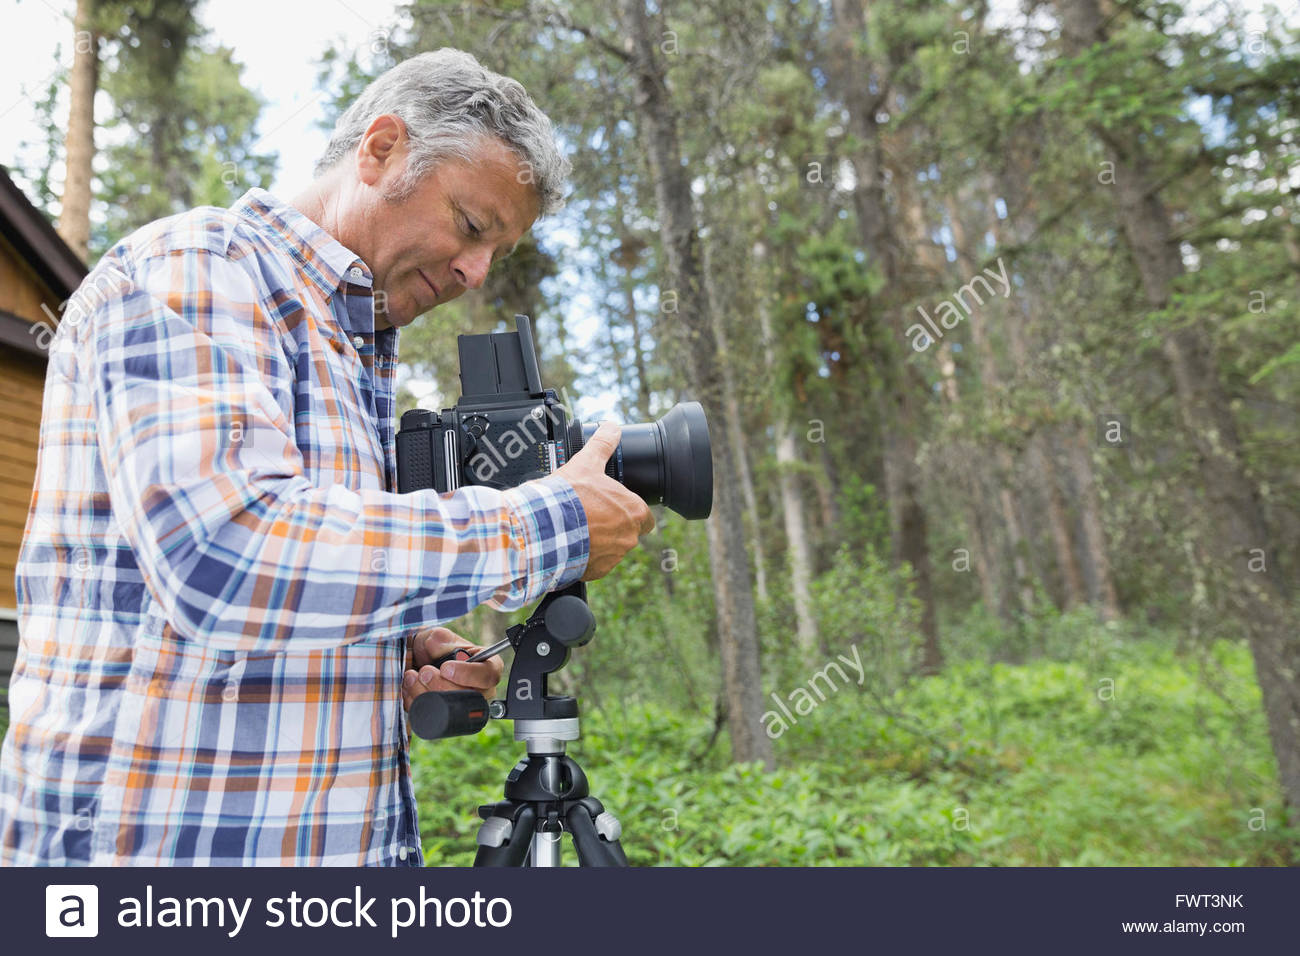 Man adjusting lens of SLR camera in yard Stock Photo